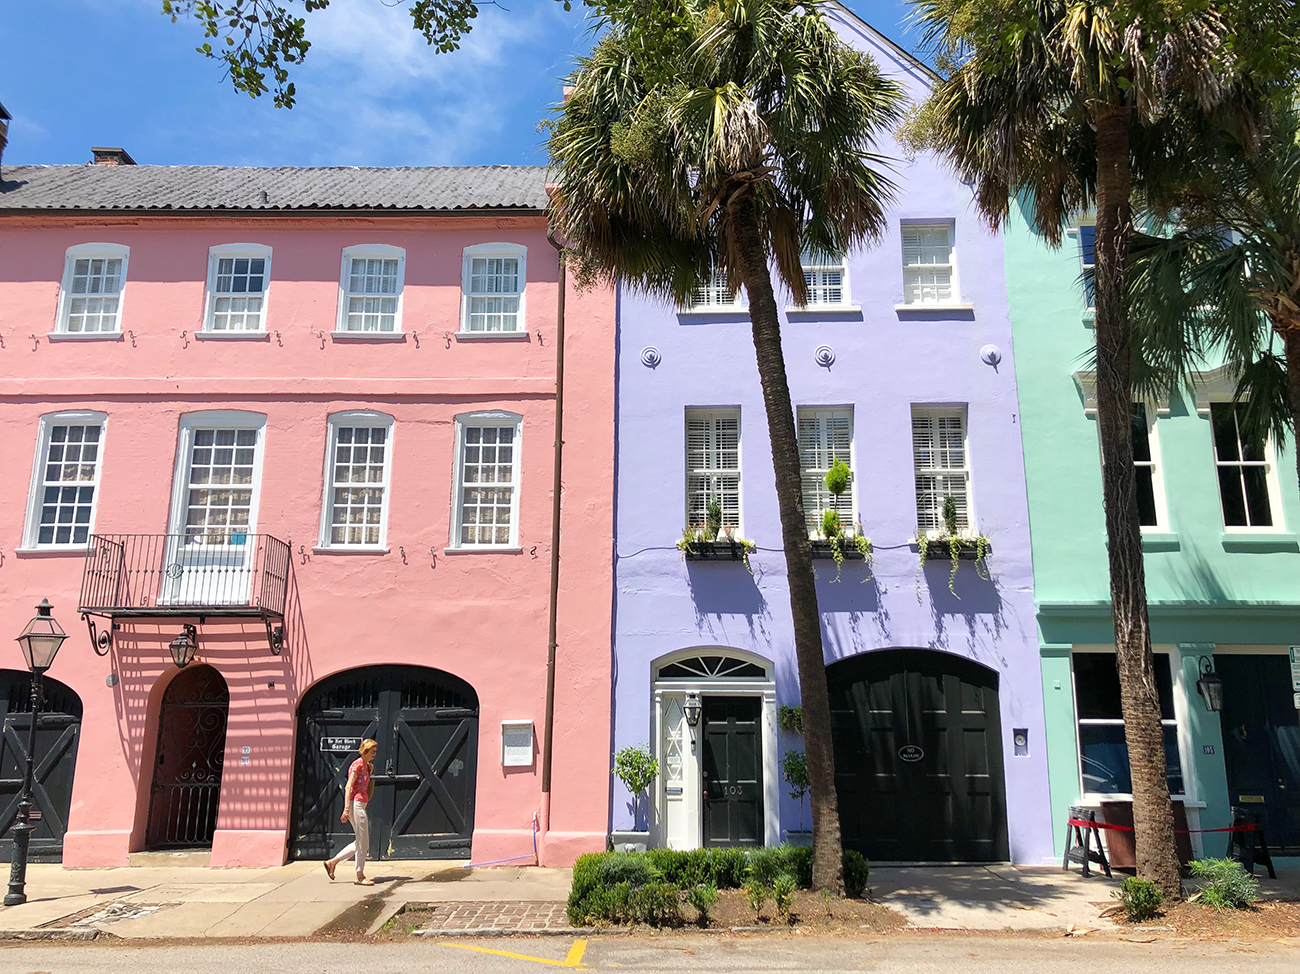 35 things to see do and eat in downtown charleston charlotte agenda. Black Bedroom Furniture Sets. Home Design Ideas